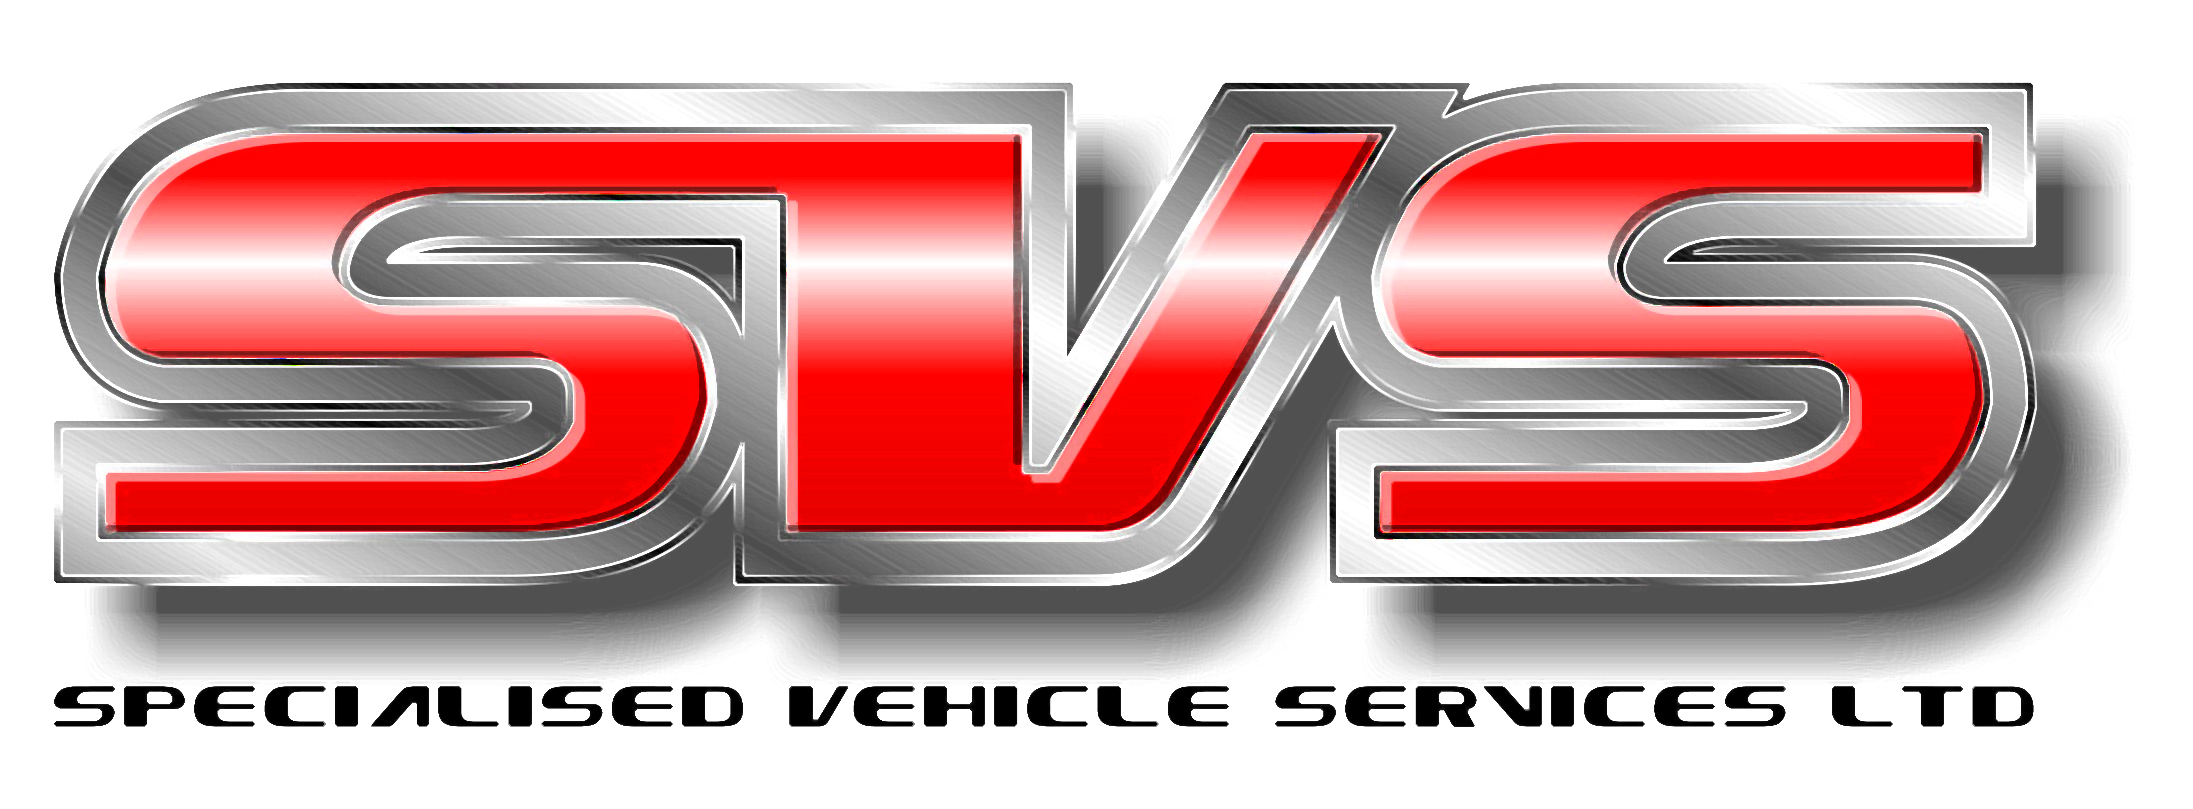 SPECIALISED VEHICLE SERVICES Logo